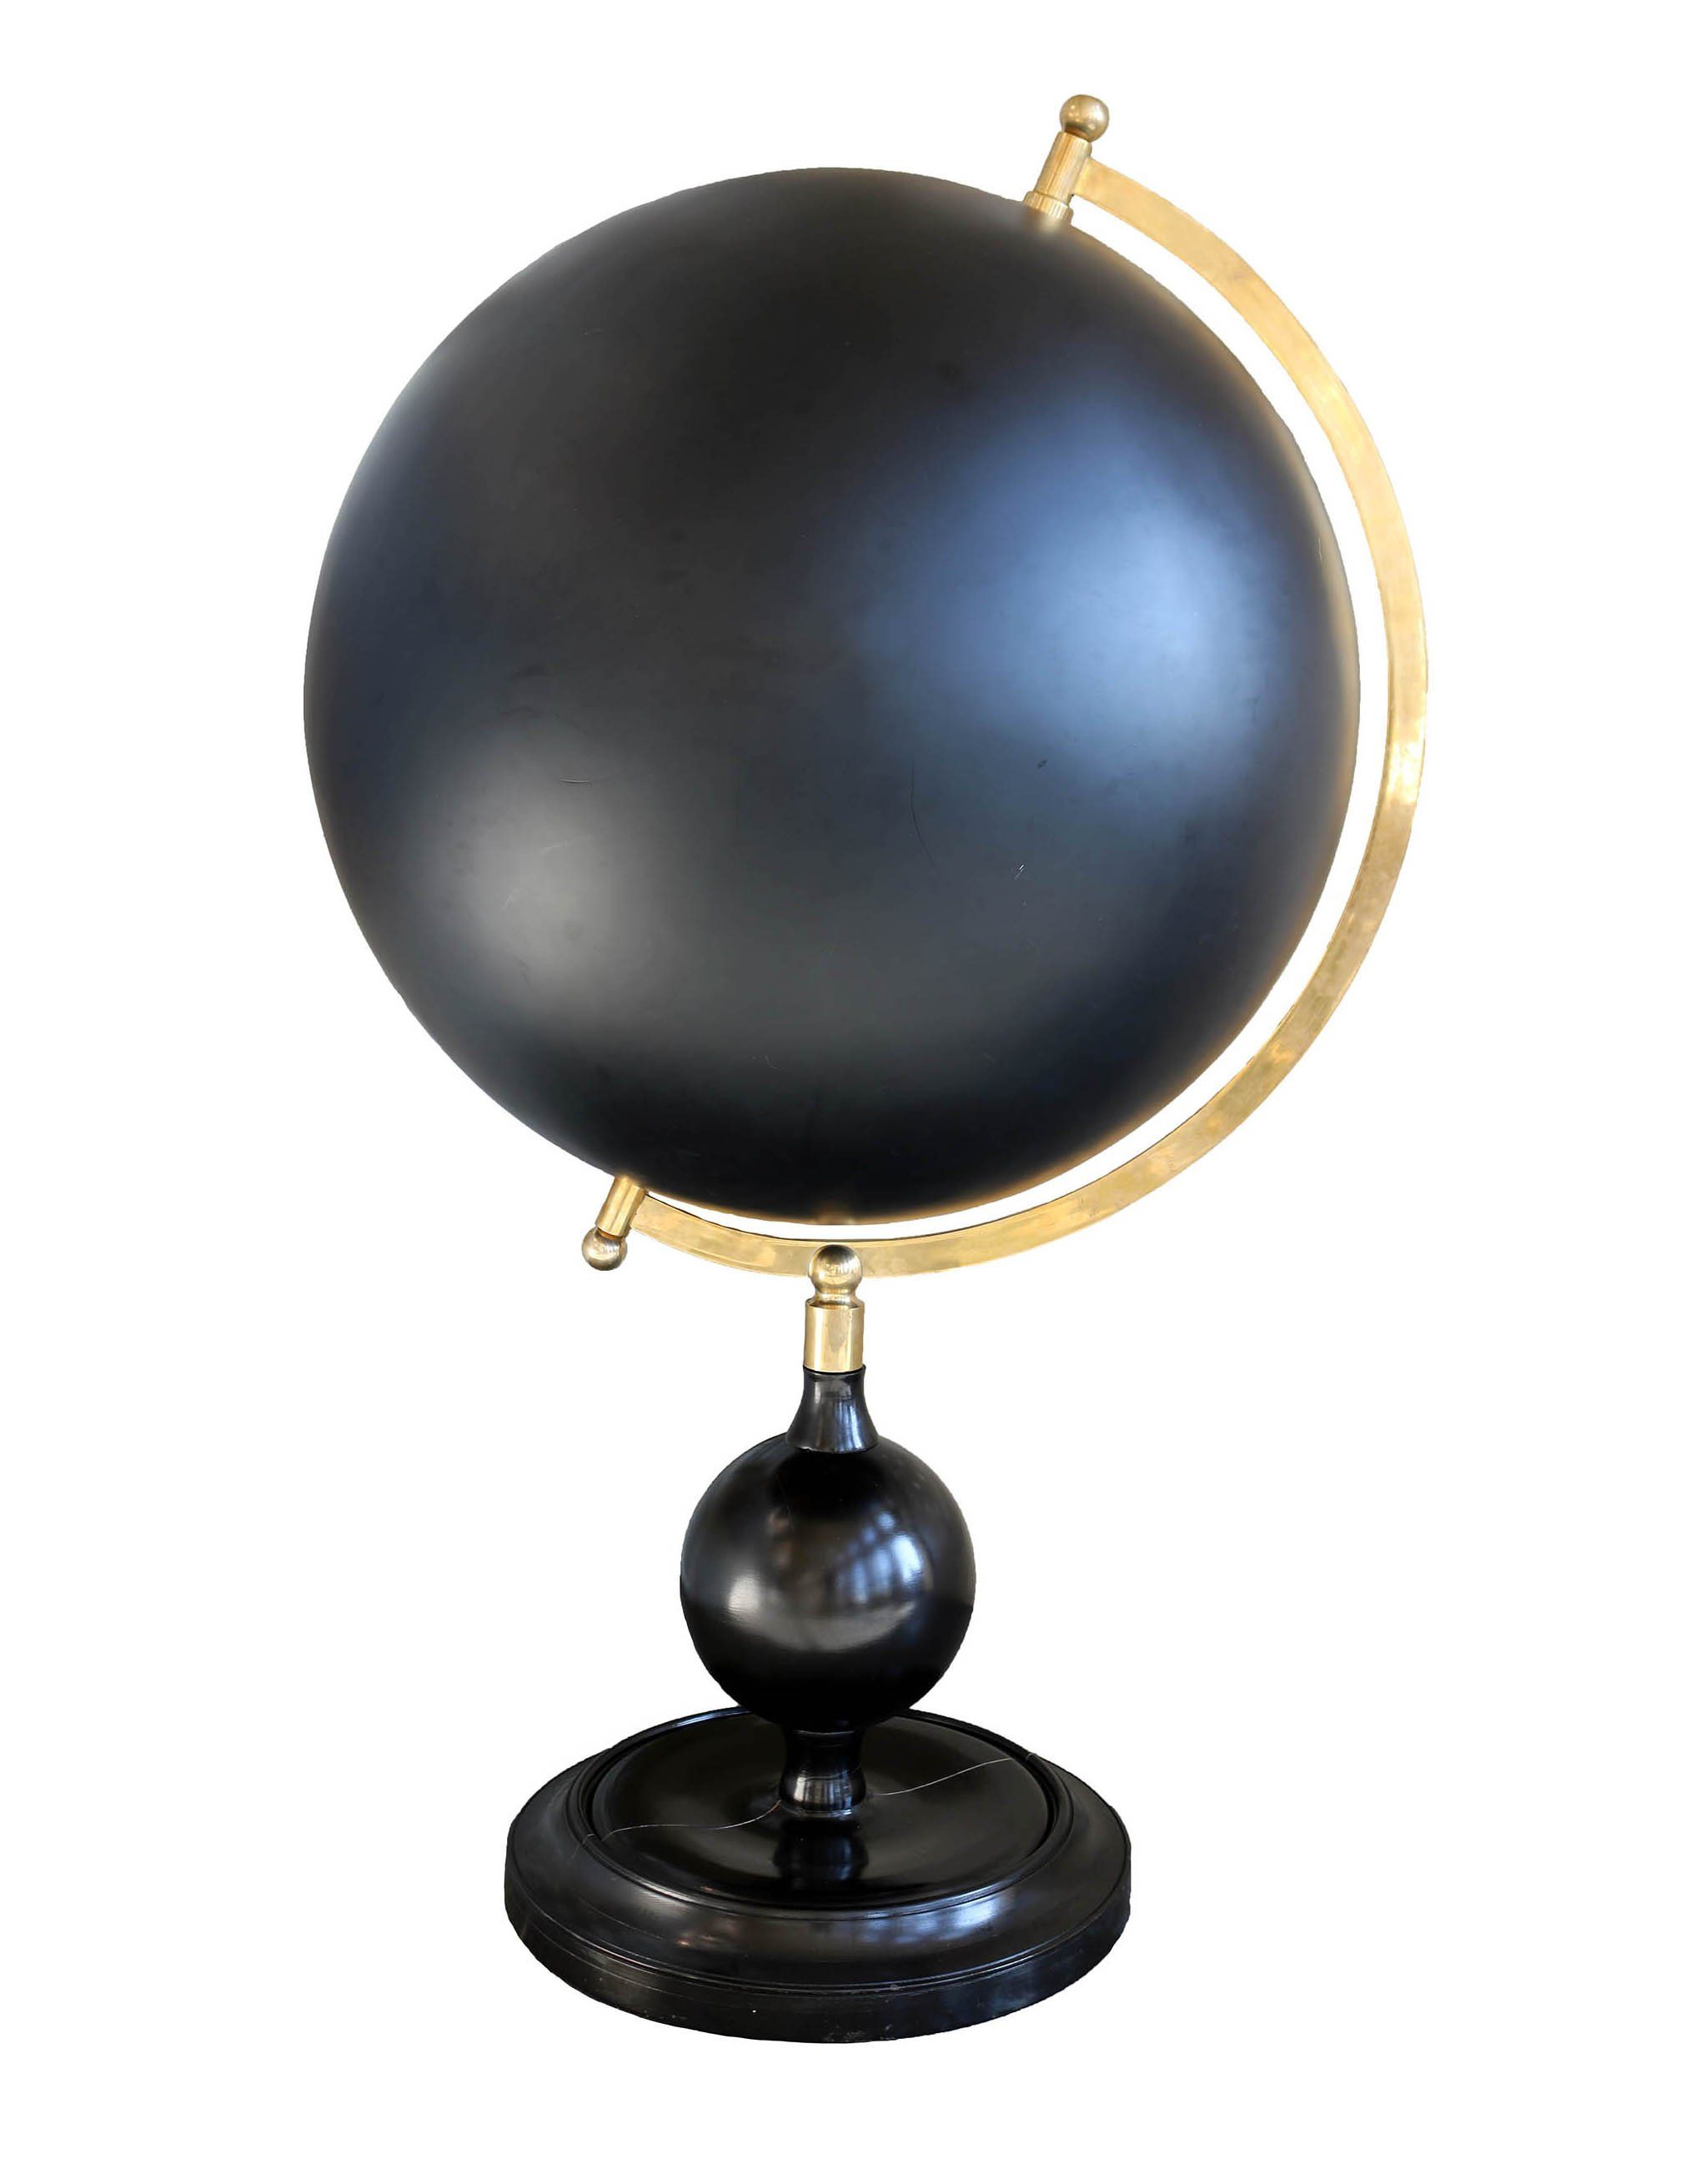 Large Celestial Globe with Brass Meridian - A Modern Grand Tour